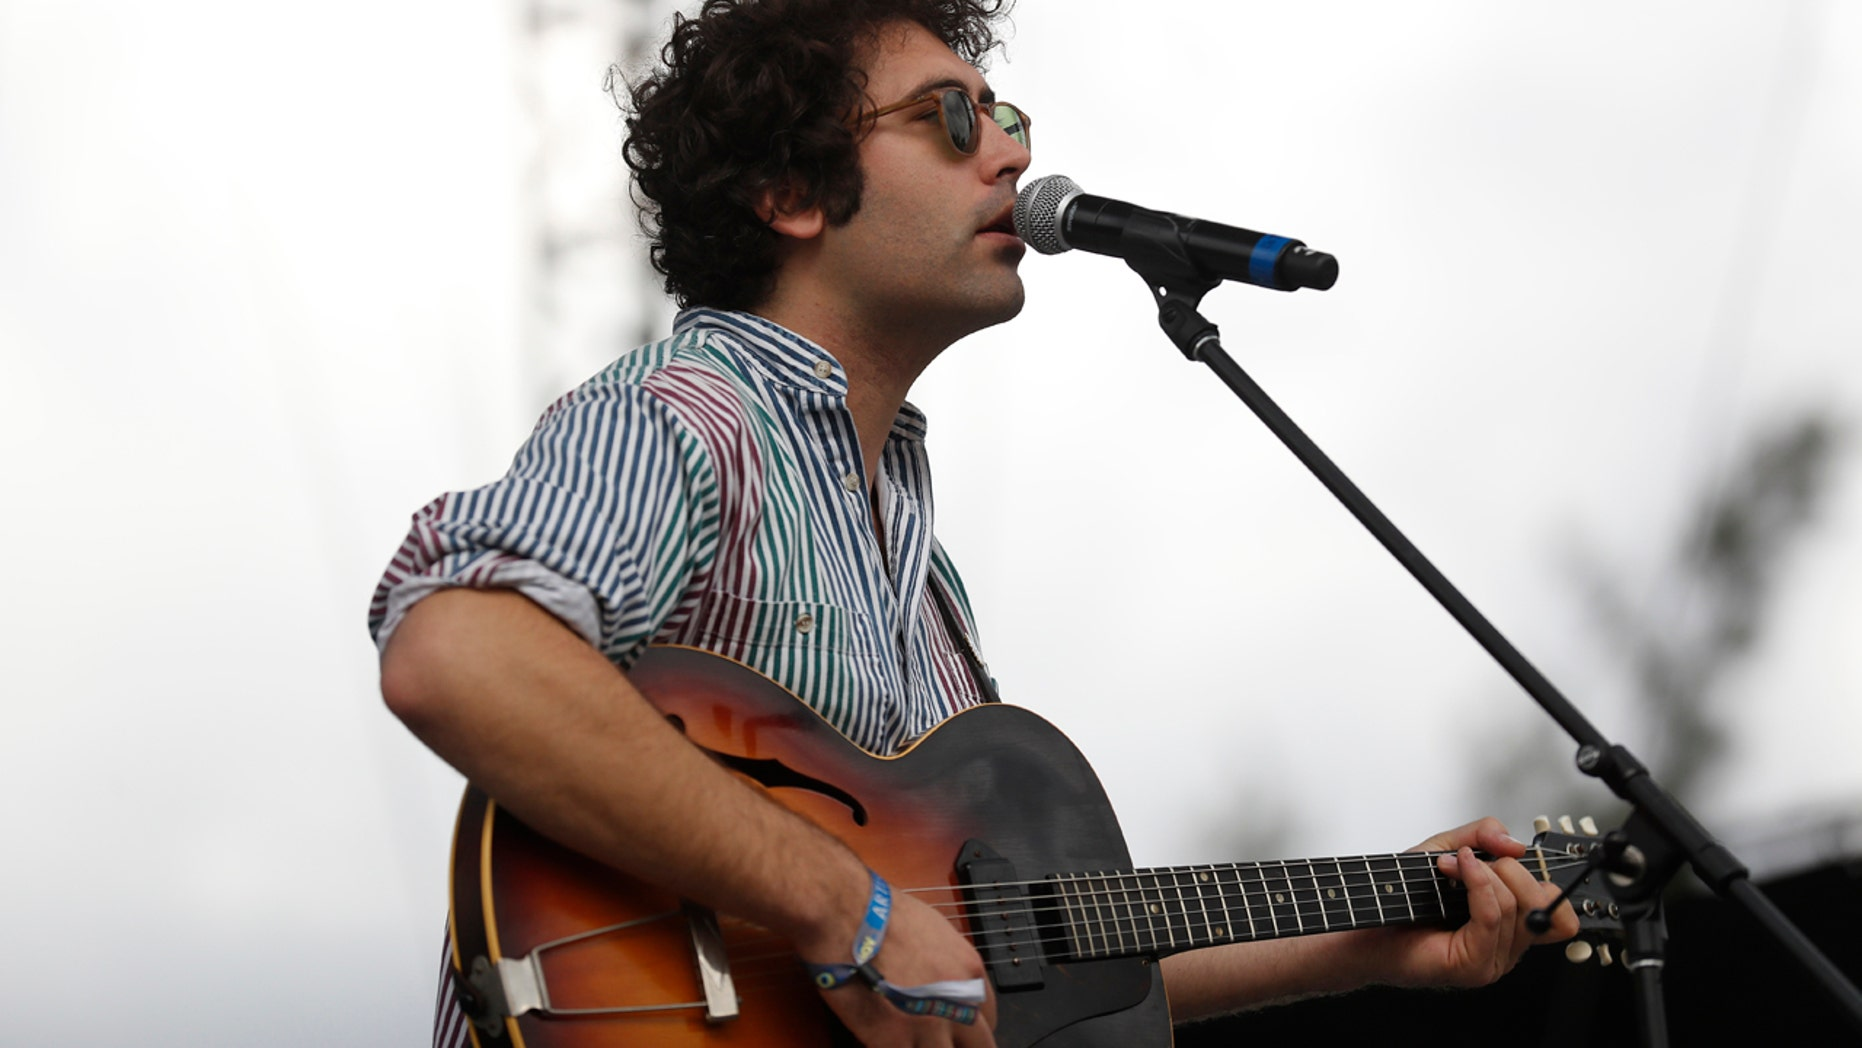 Miles Michaud, lead singer of the California band Allah-Las, performs during the second and last day of the Corona Capital Music Festival in Mexico City in November 2016.